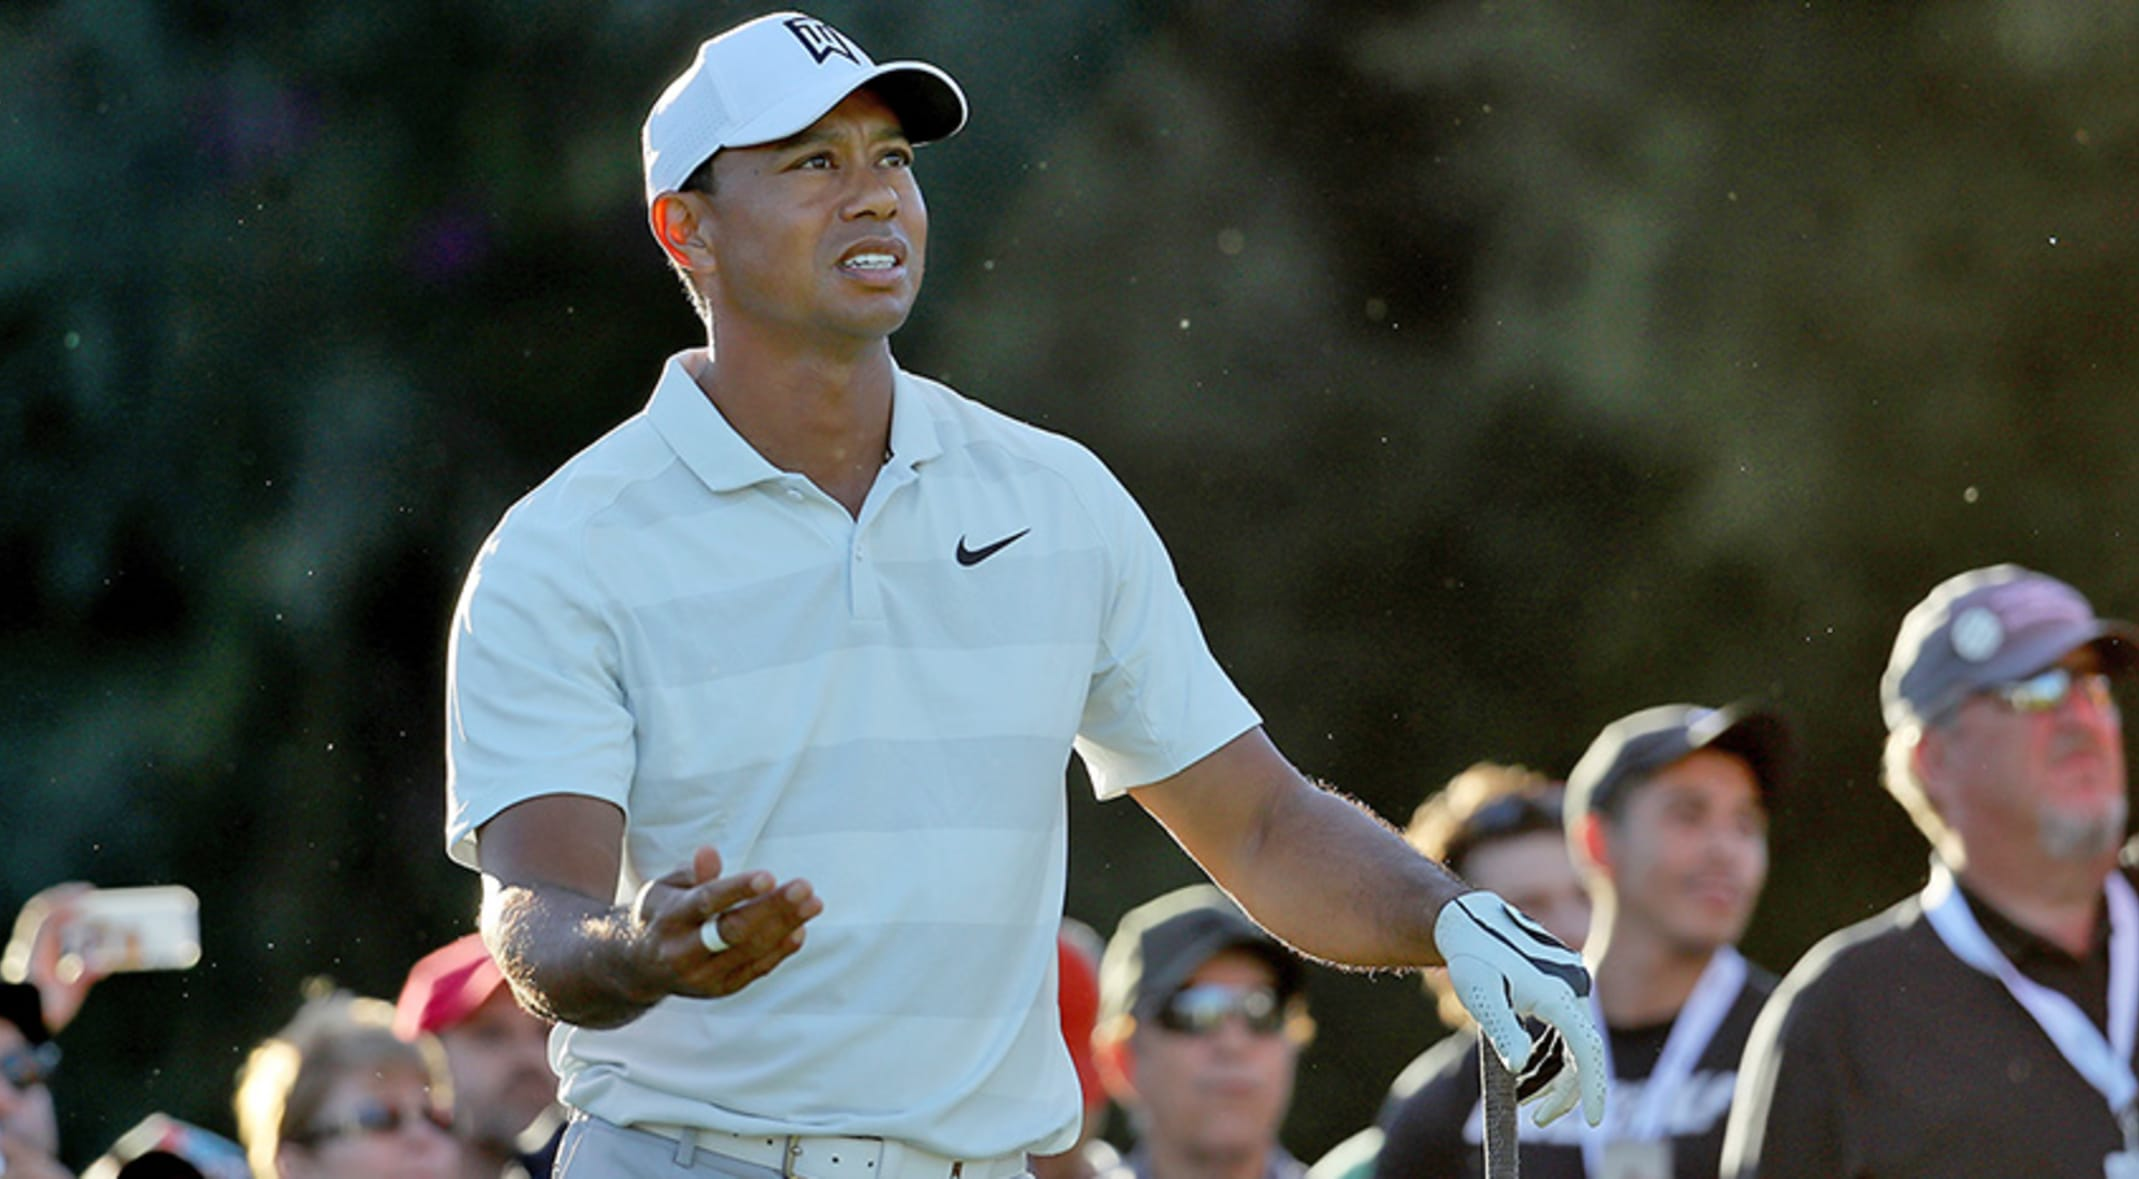 afbb21a4e Tiger Woods looking ahead after likely missing the cut at Genesis Open